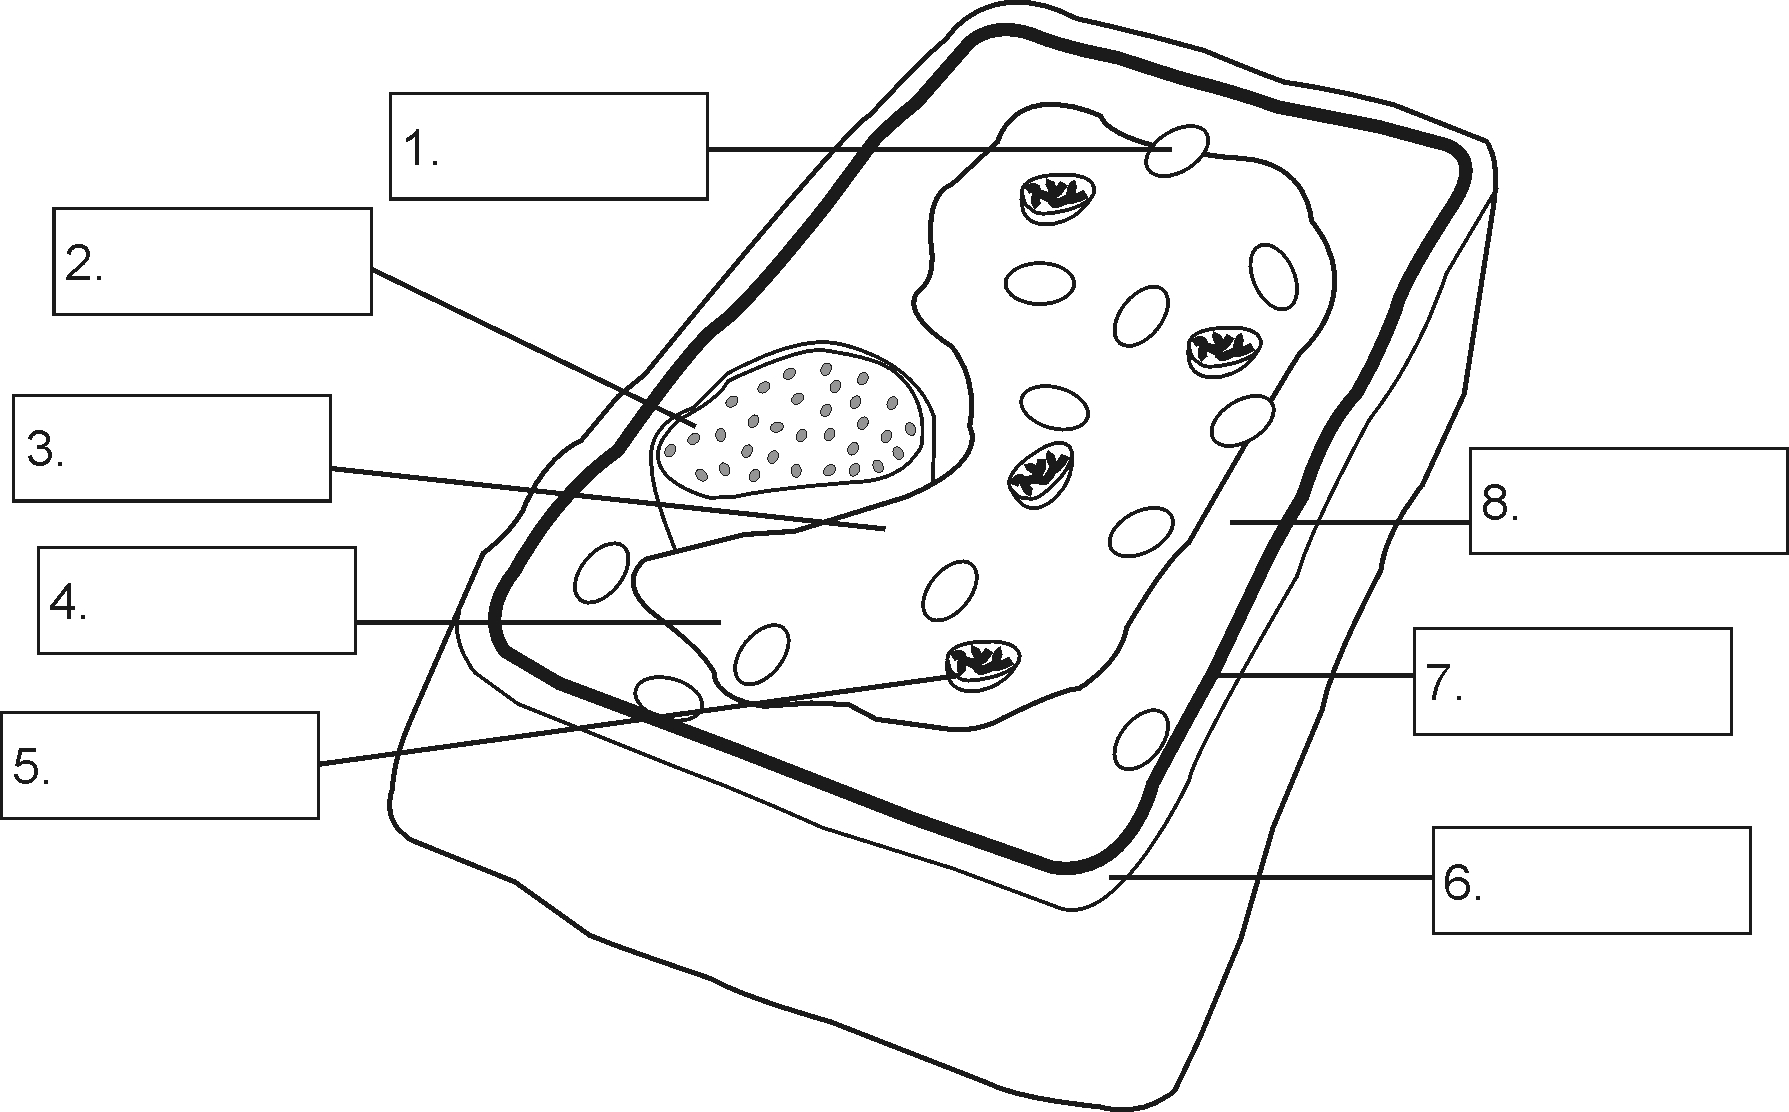 Label Plant Cell Diagram Together With Worksheet Drawing Labels At Free For 1789x1112 Structure Of A